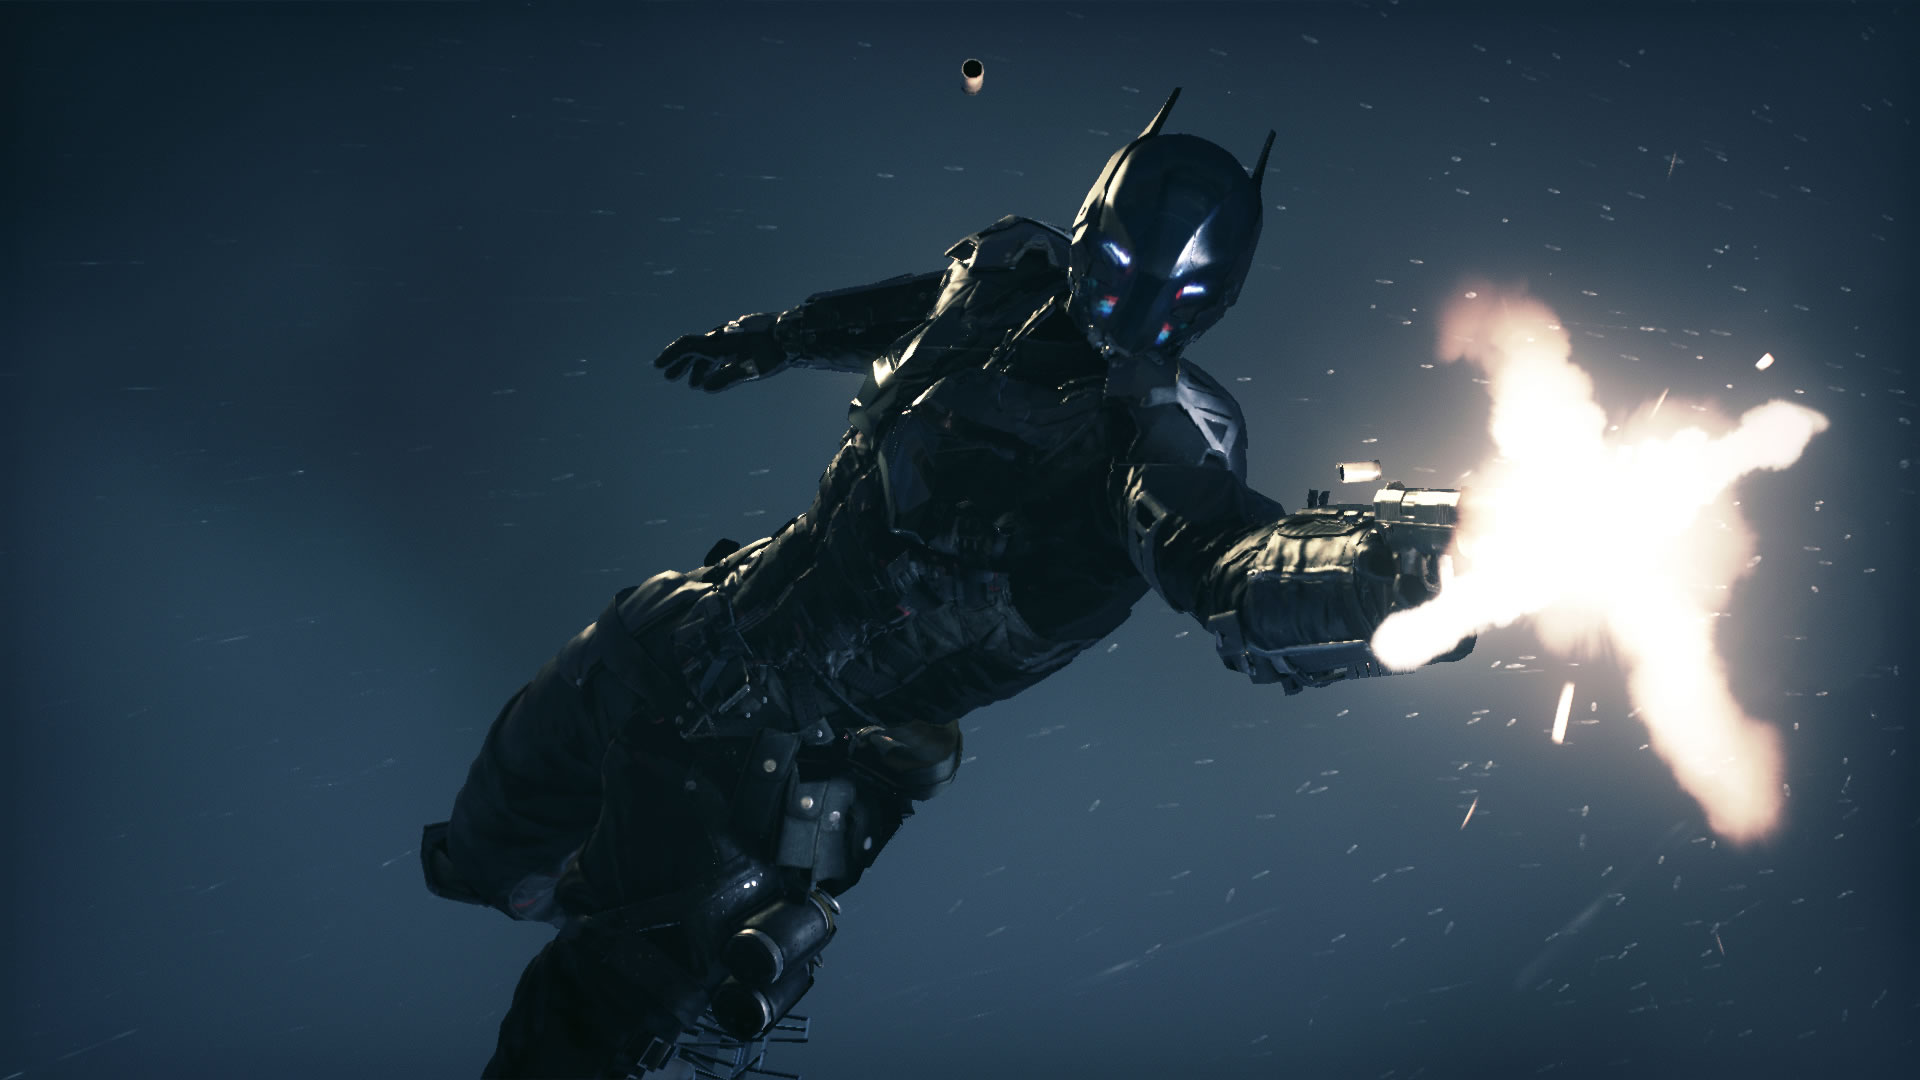 The Arkham Knight in Rocksteady Games 'Batman: Arkham Knight'